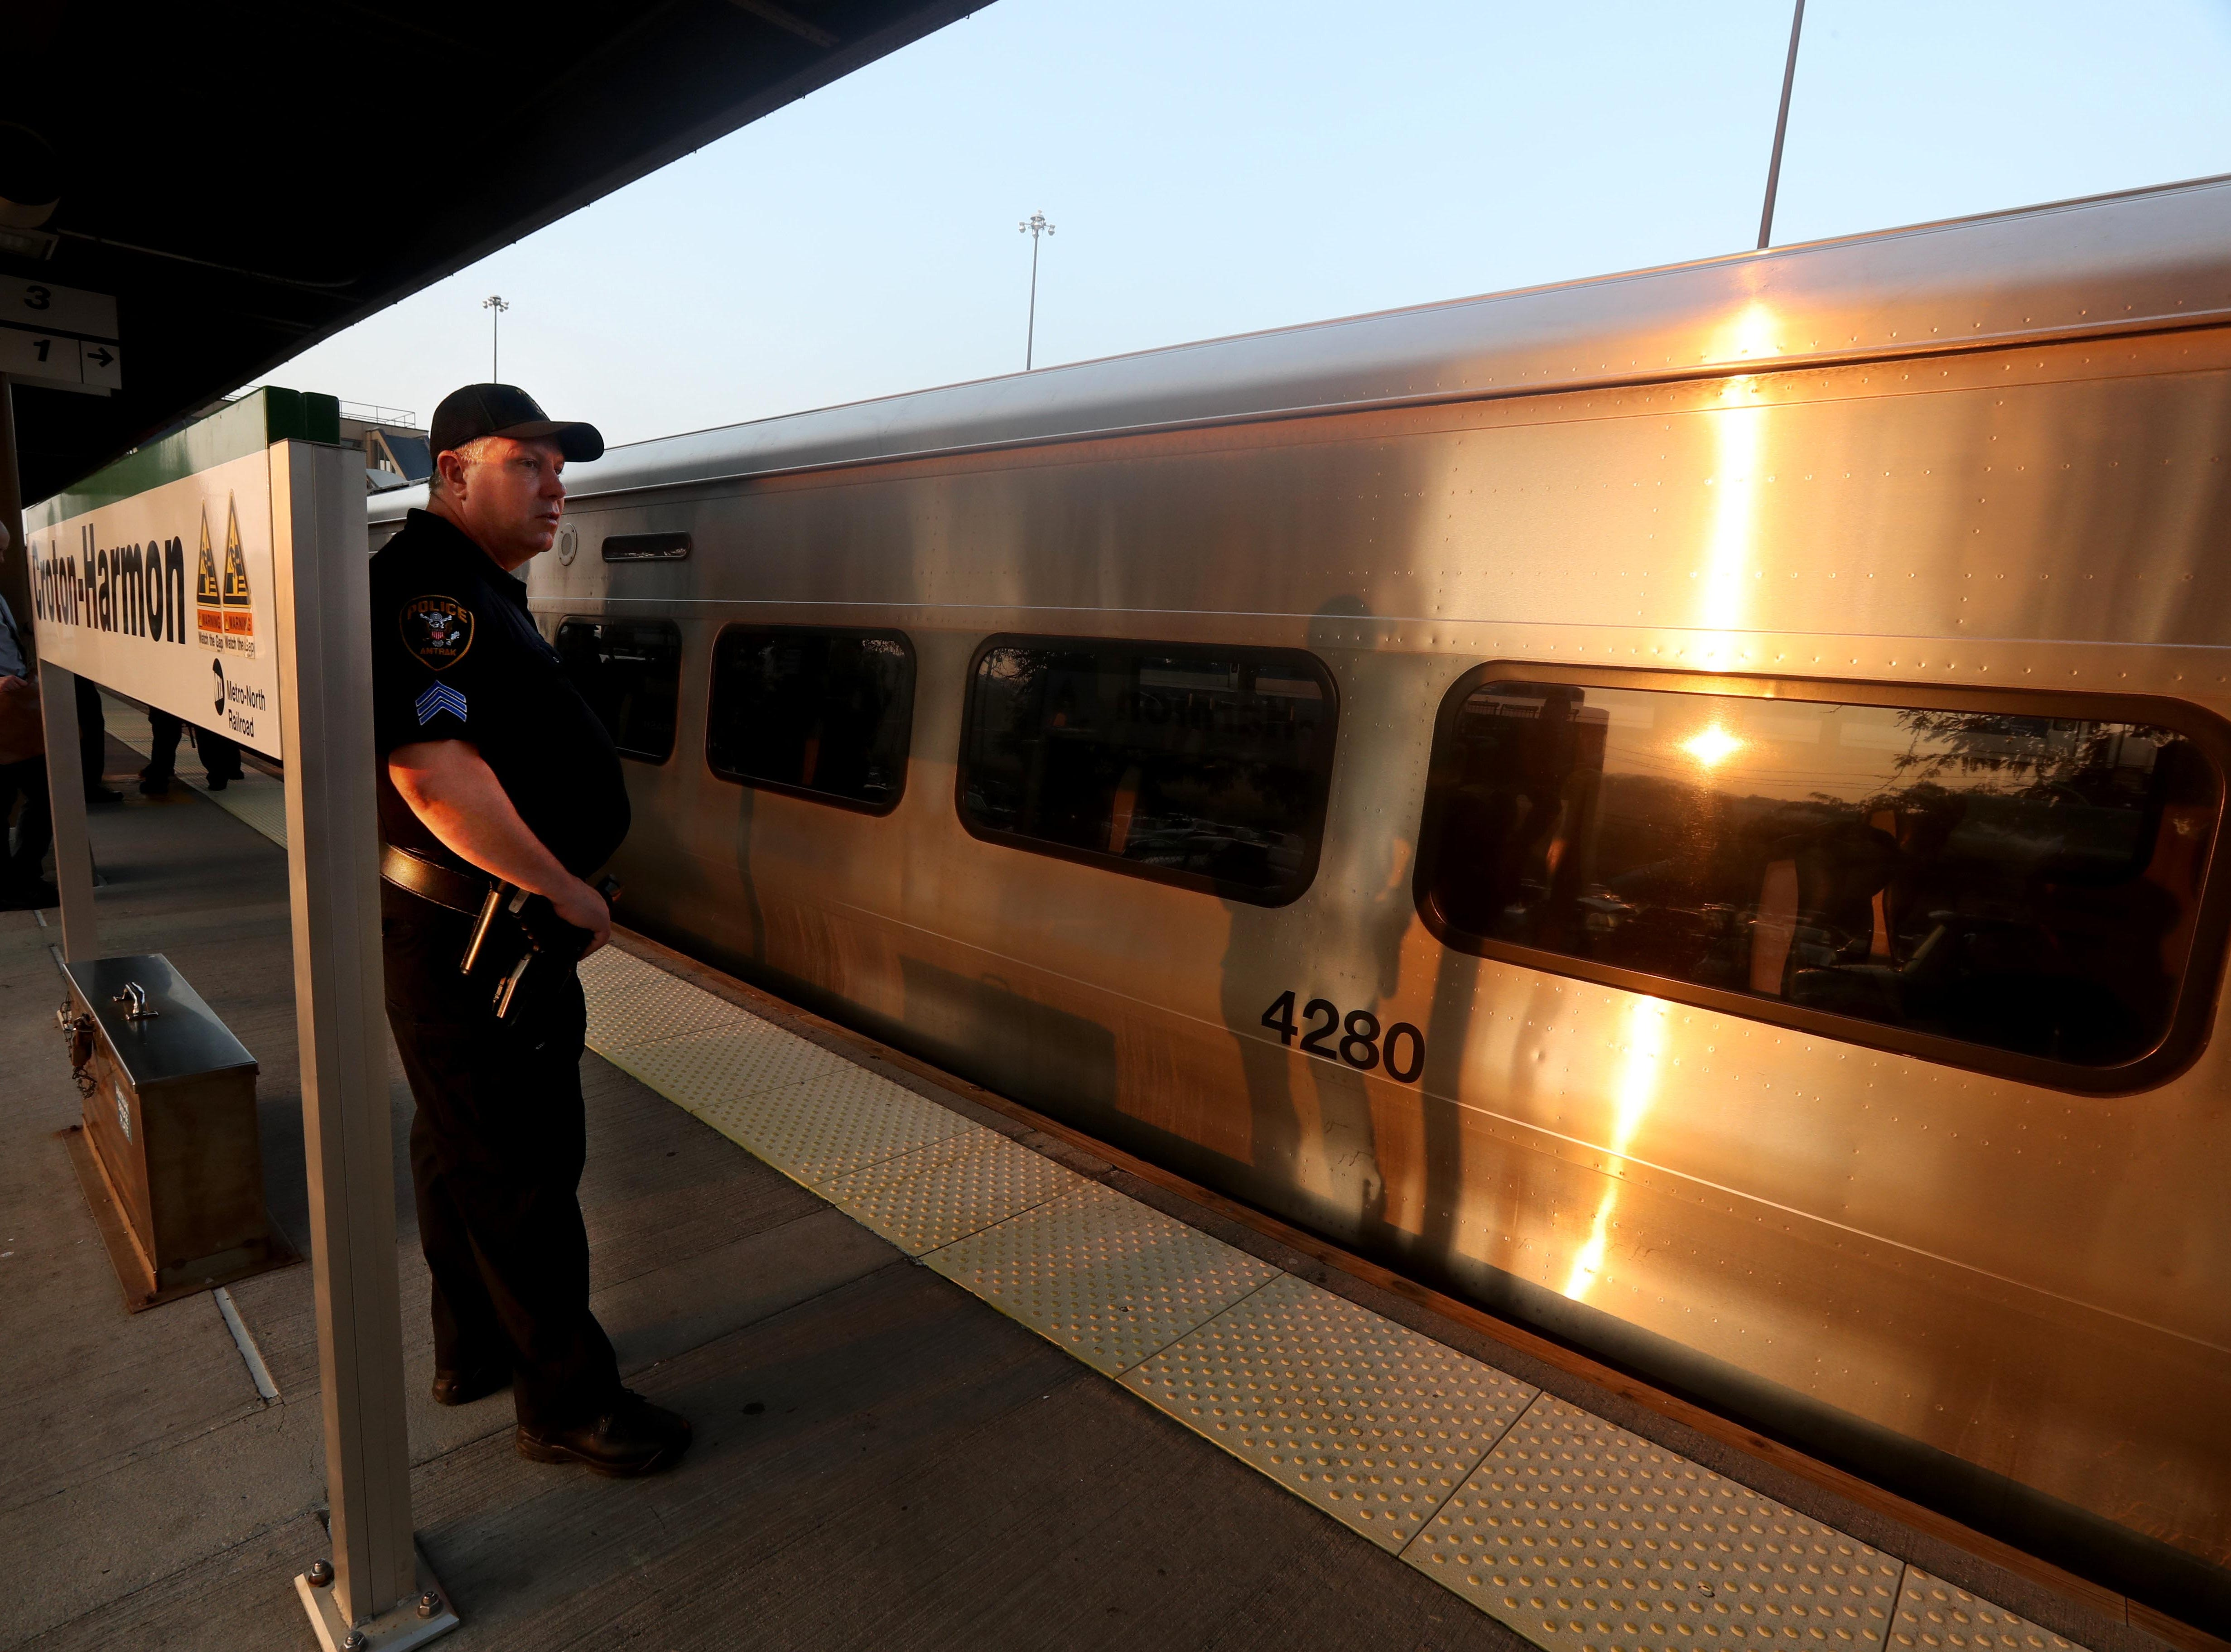 An Amtrak police officer stands on the platform at the Croton-Harmon station during a multi-department safety drill Aug. 28, 2018. Officers from the MTA, Amtrak, Croton Harmon, New York State Police, TSA, and Department of Homeland Security departments took part in the drill during the morning rush hour. The drill involved heightened platform patrols, increased security presence onboard trains, explosives detection canine sweeps, and counter-surveillance measures. Similar drills were also held at several other Hudson Line stations during the morning commute.